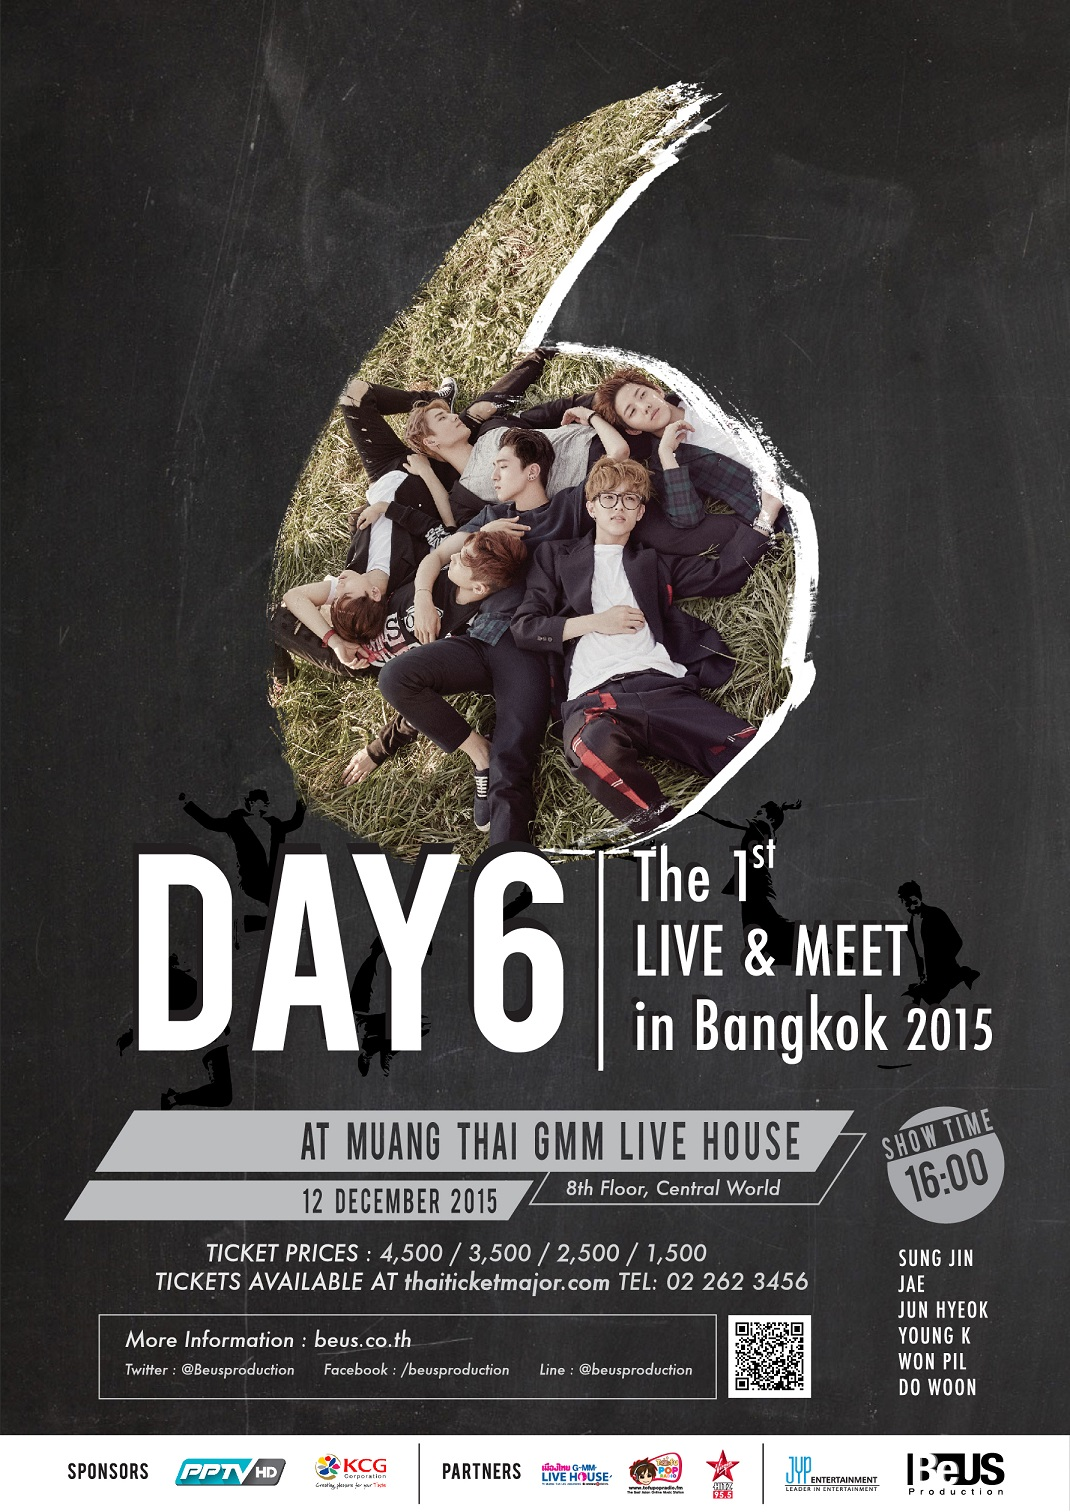 [FINAL]DAY6 POSTER-01